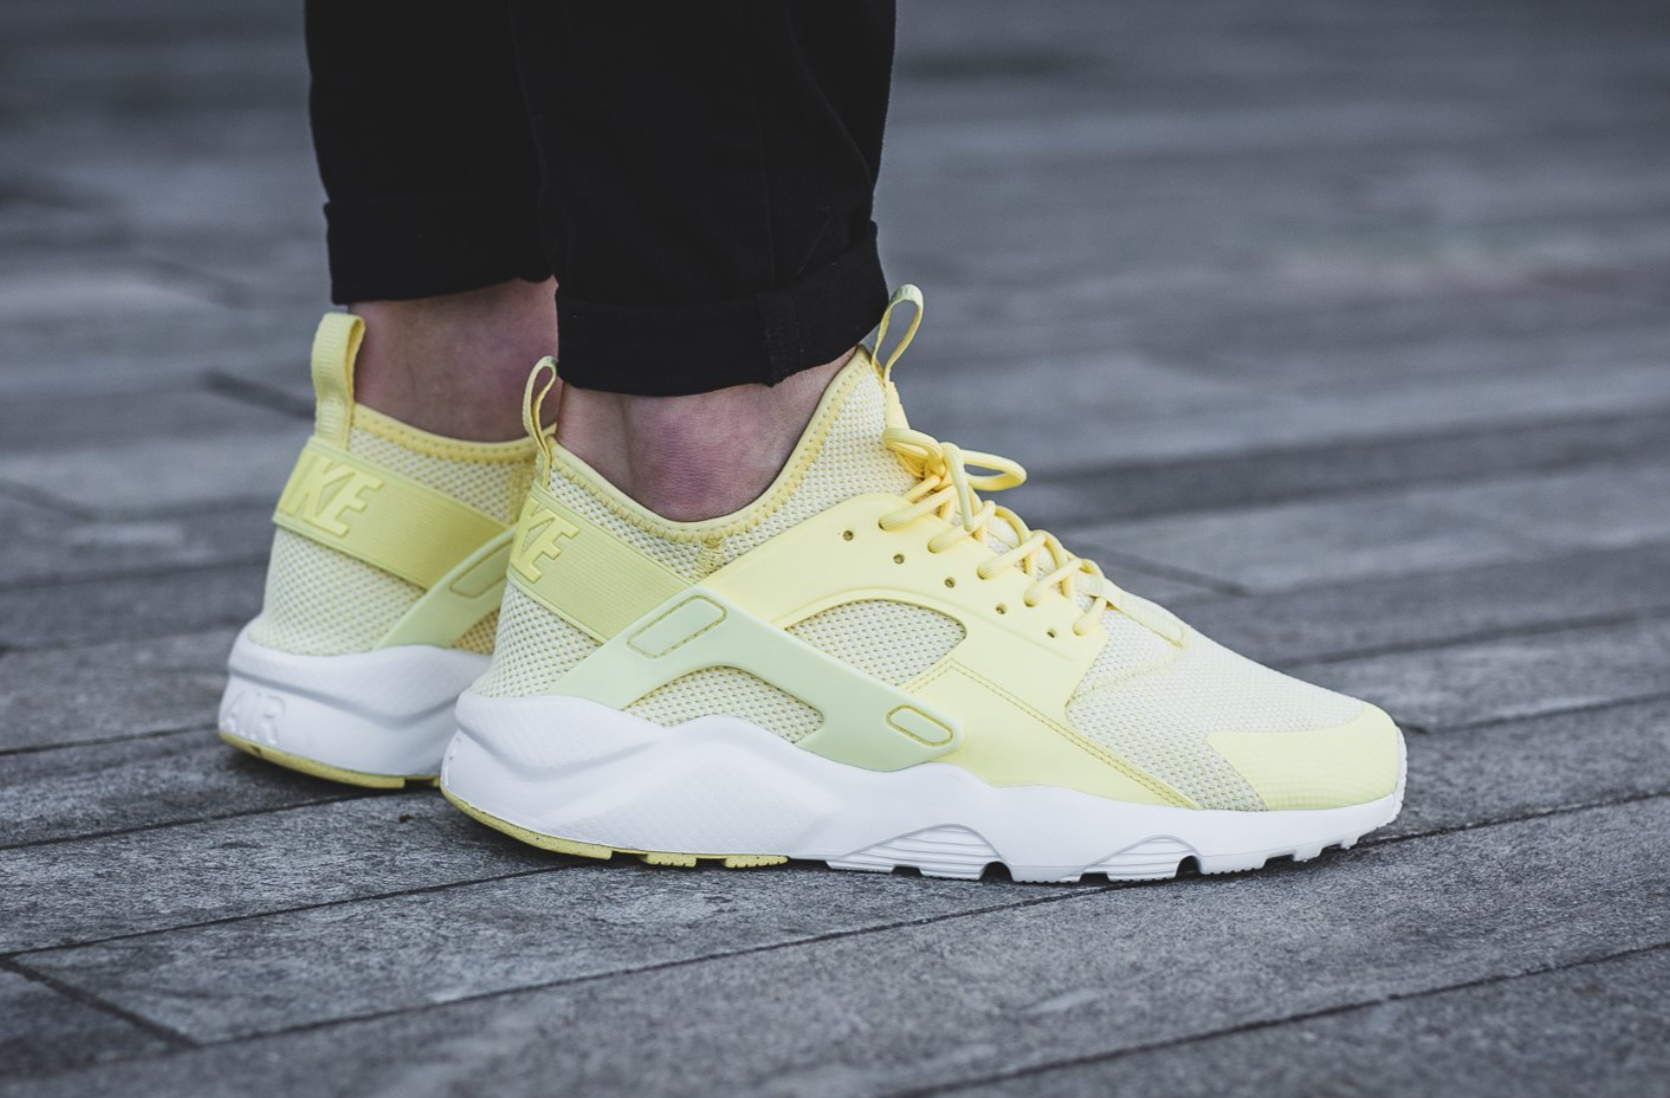 e9f17f60265e Nike Air Huarache Ultra Breeze Lemon Chiffon